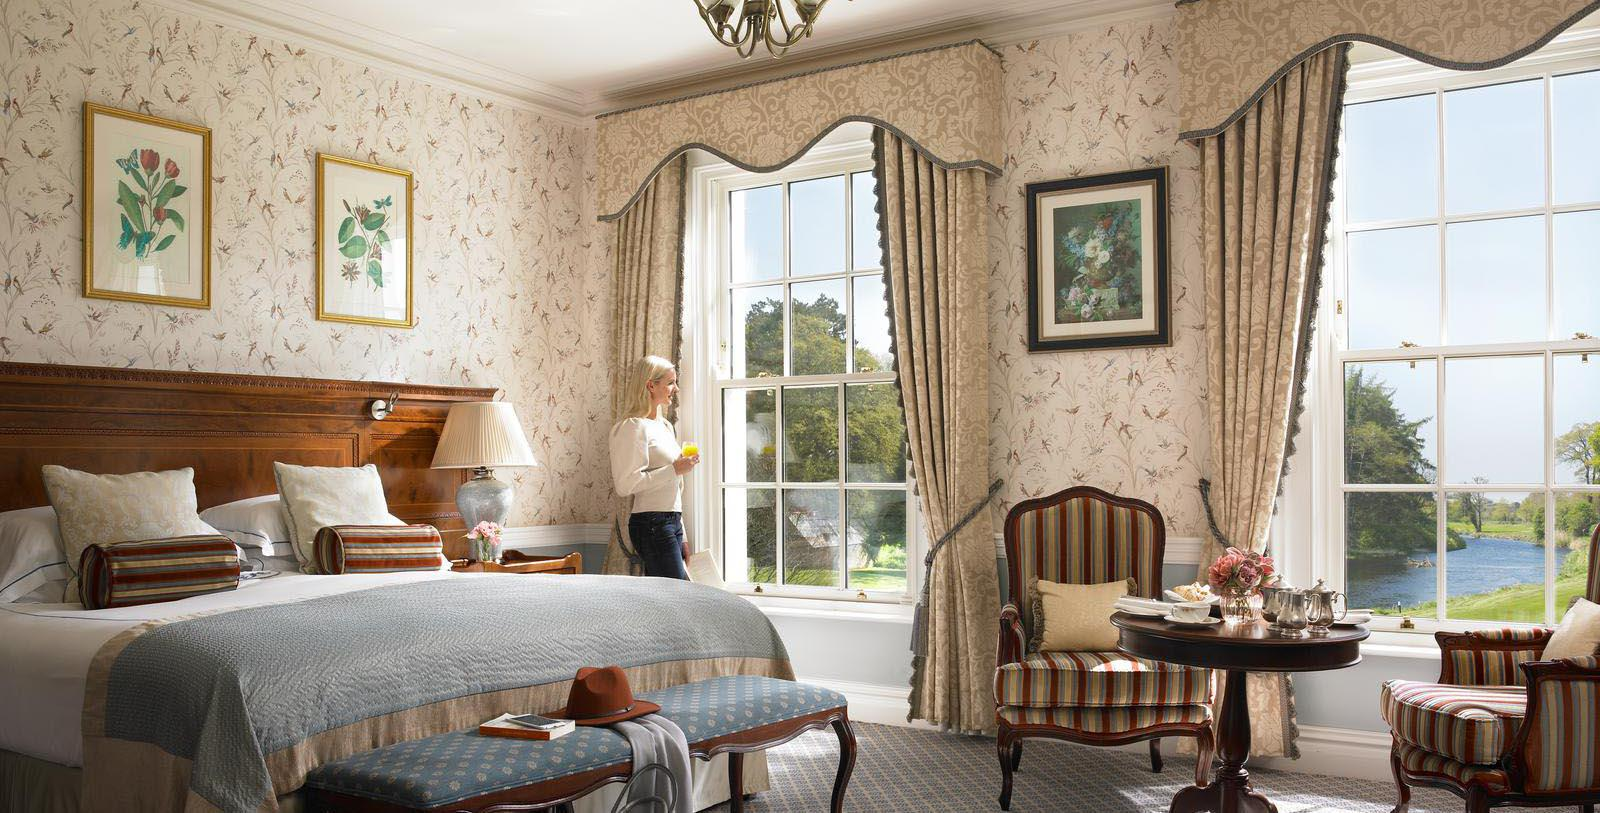 Image of River View Guestroom at The K Club, 550, Member of Historic Hotels Worldwide, in Straffan, County Kildare, Ireland, Hot Deals